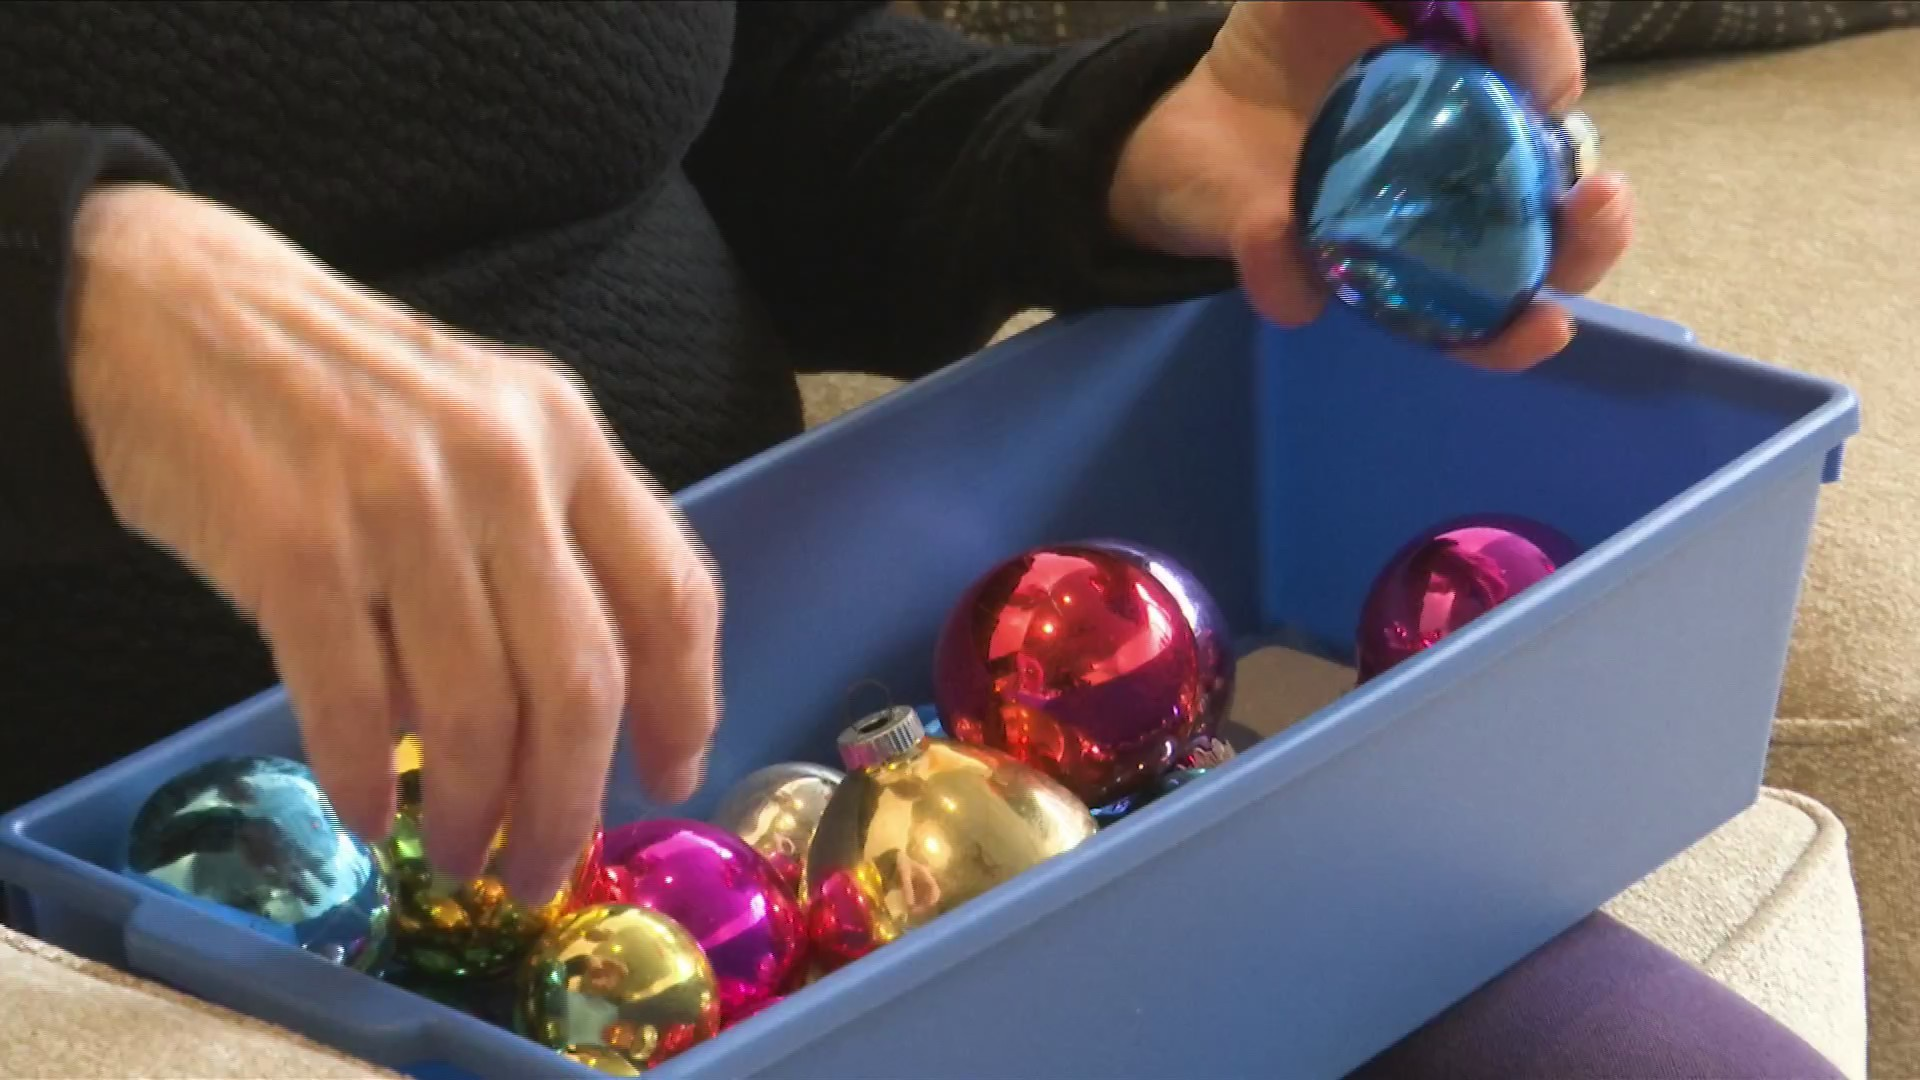 Unpacking_local_Christmas_history_1_20181122001504